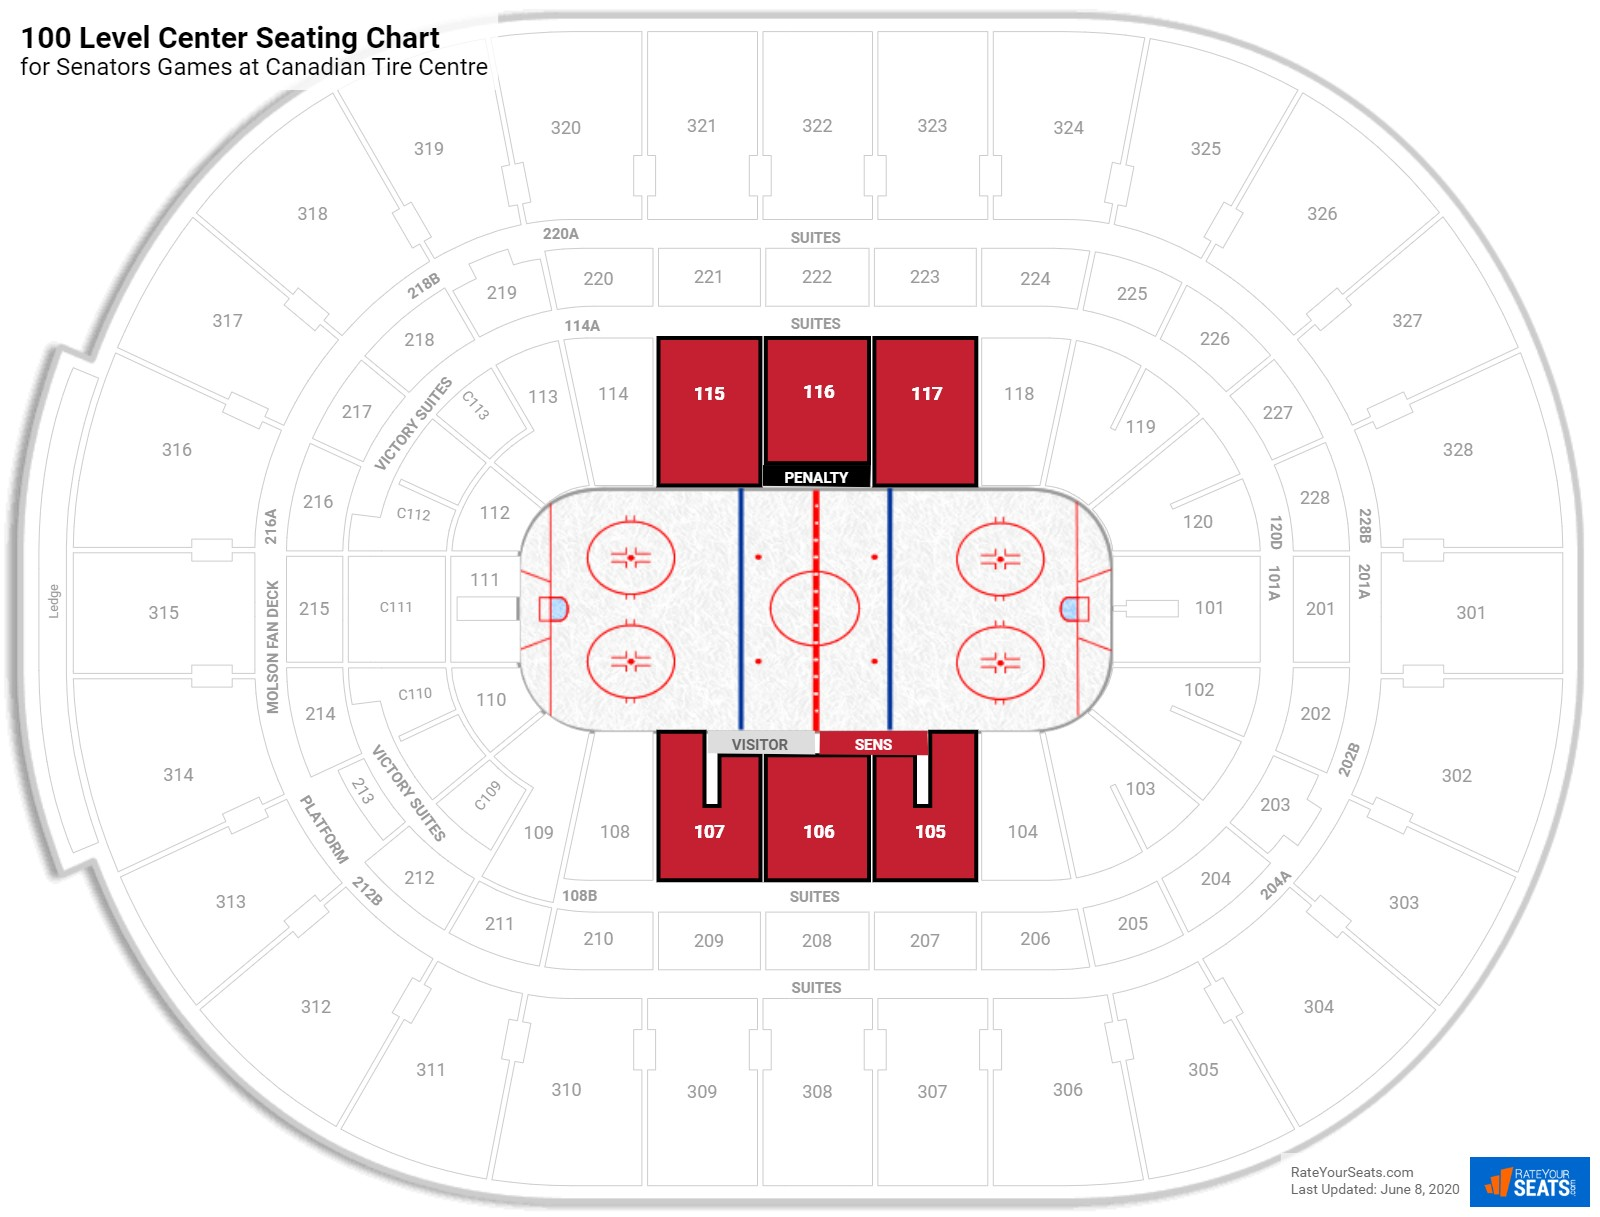 Canadian Tire Centre 100 Level Center seating chart